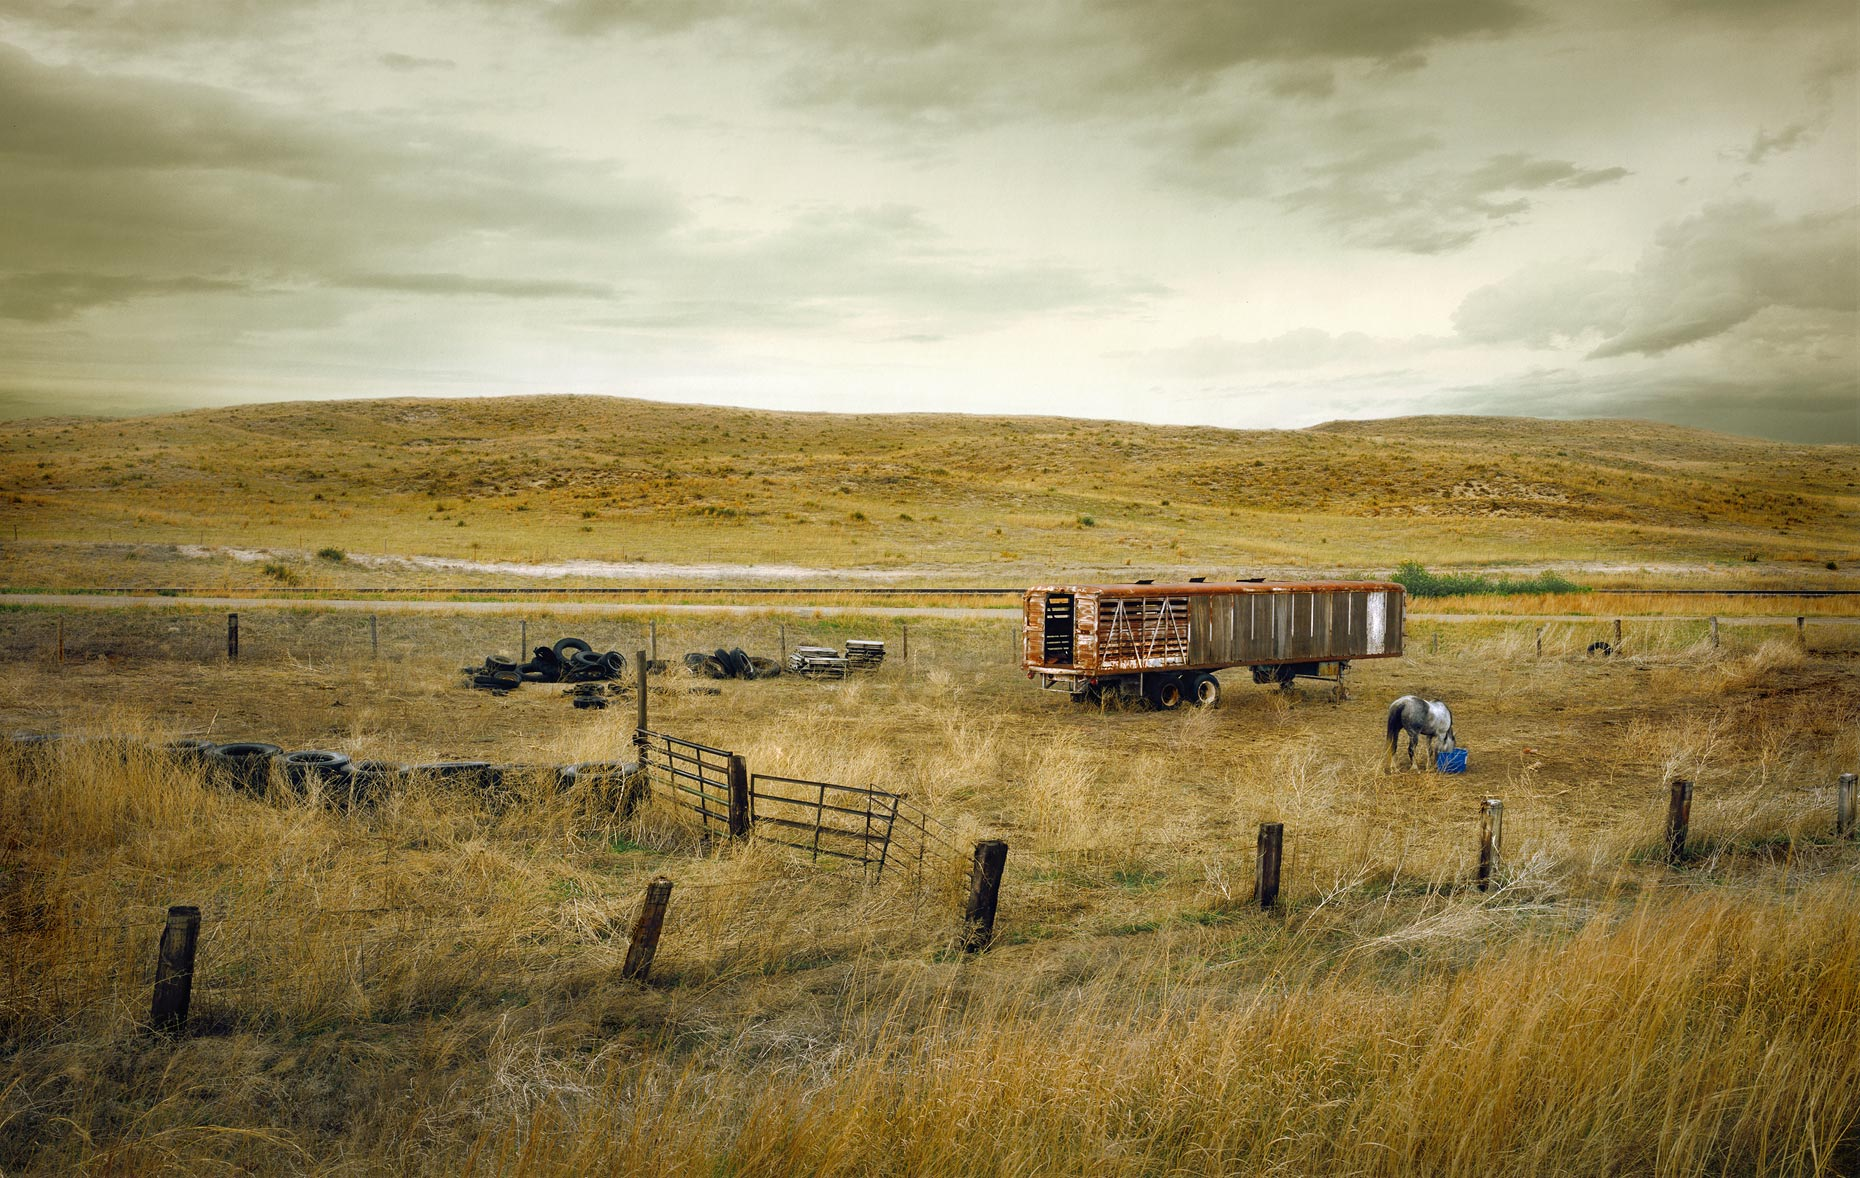 Horse corral in the Sand Hills of Nebraska